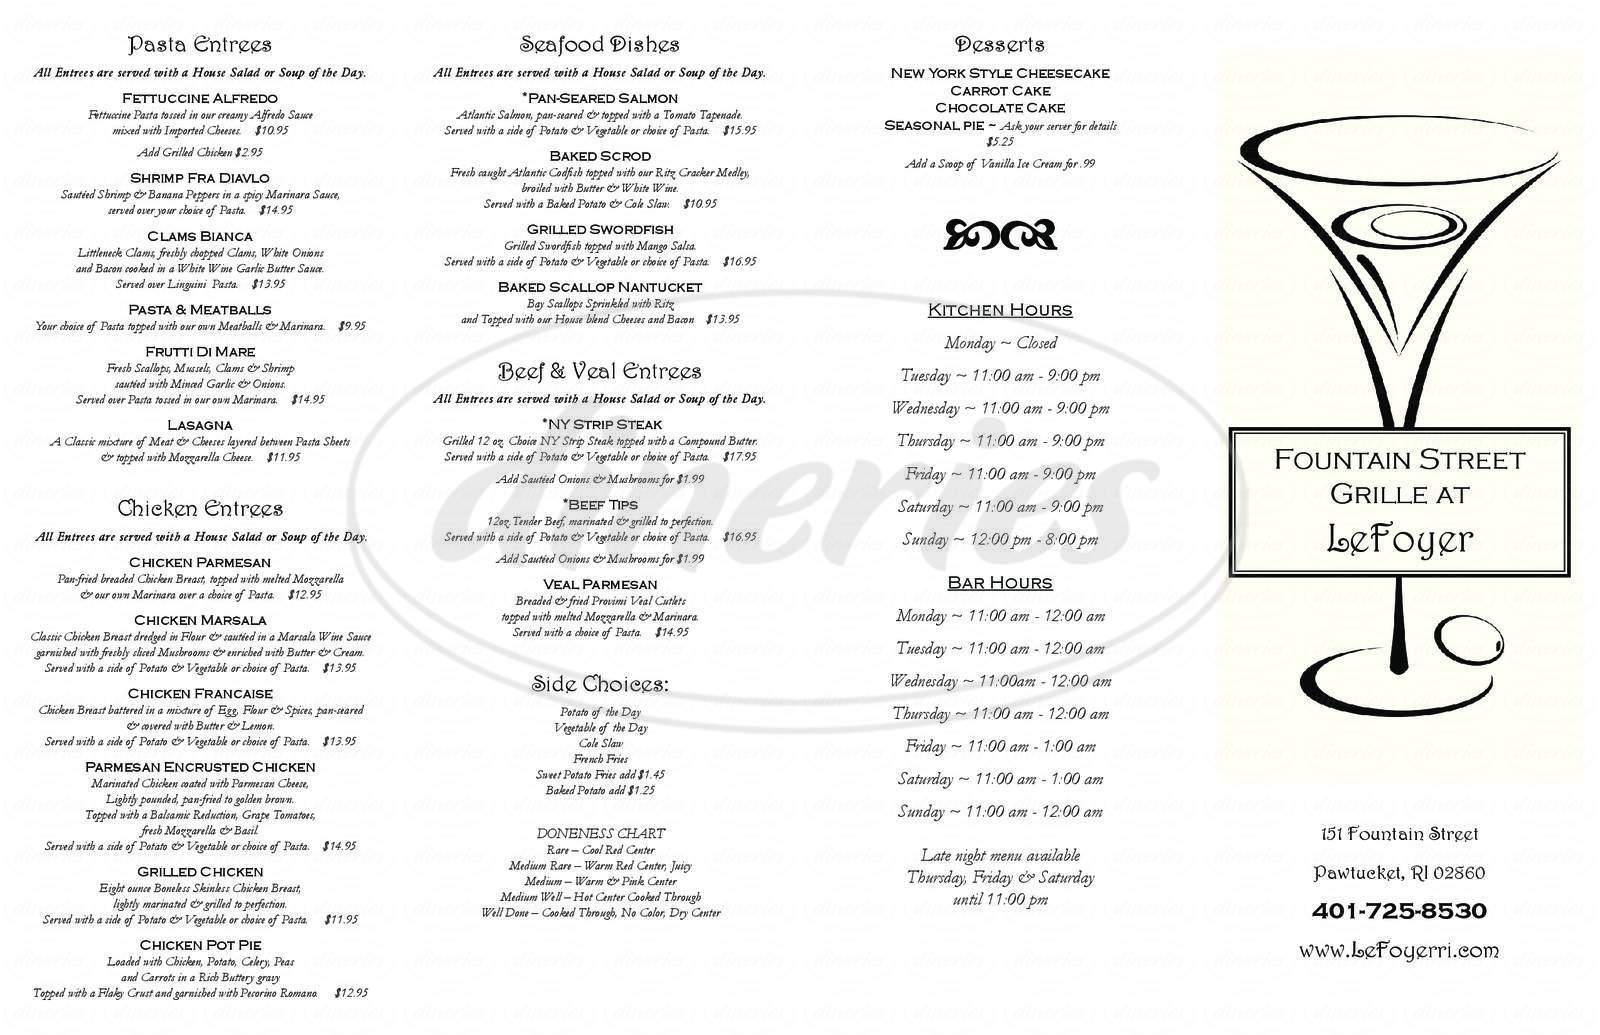 menu for Fountain Street Grille at LeFoyer